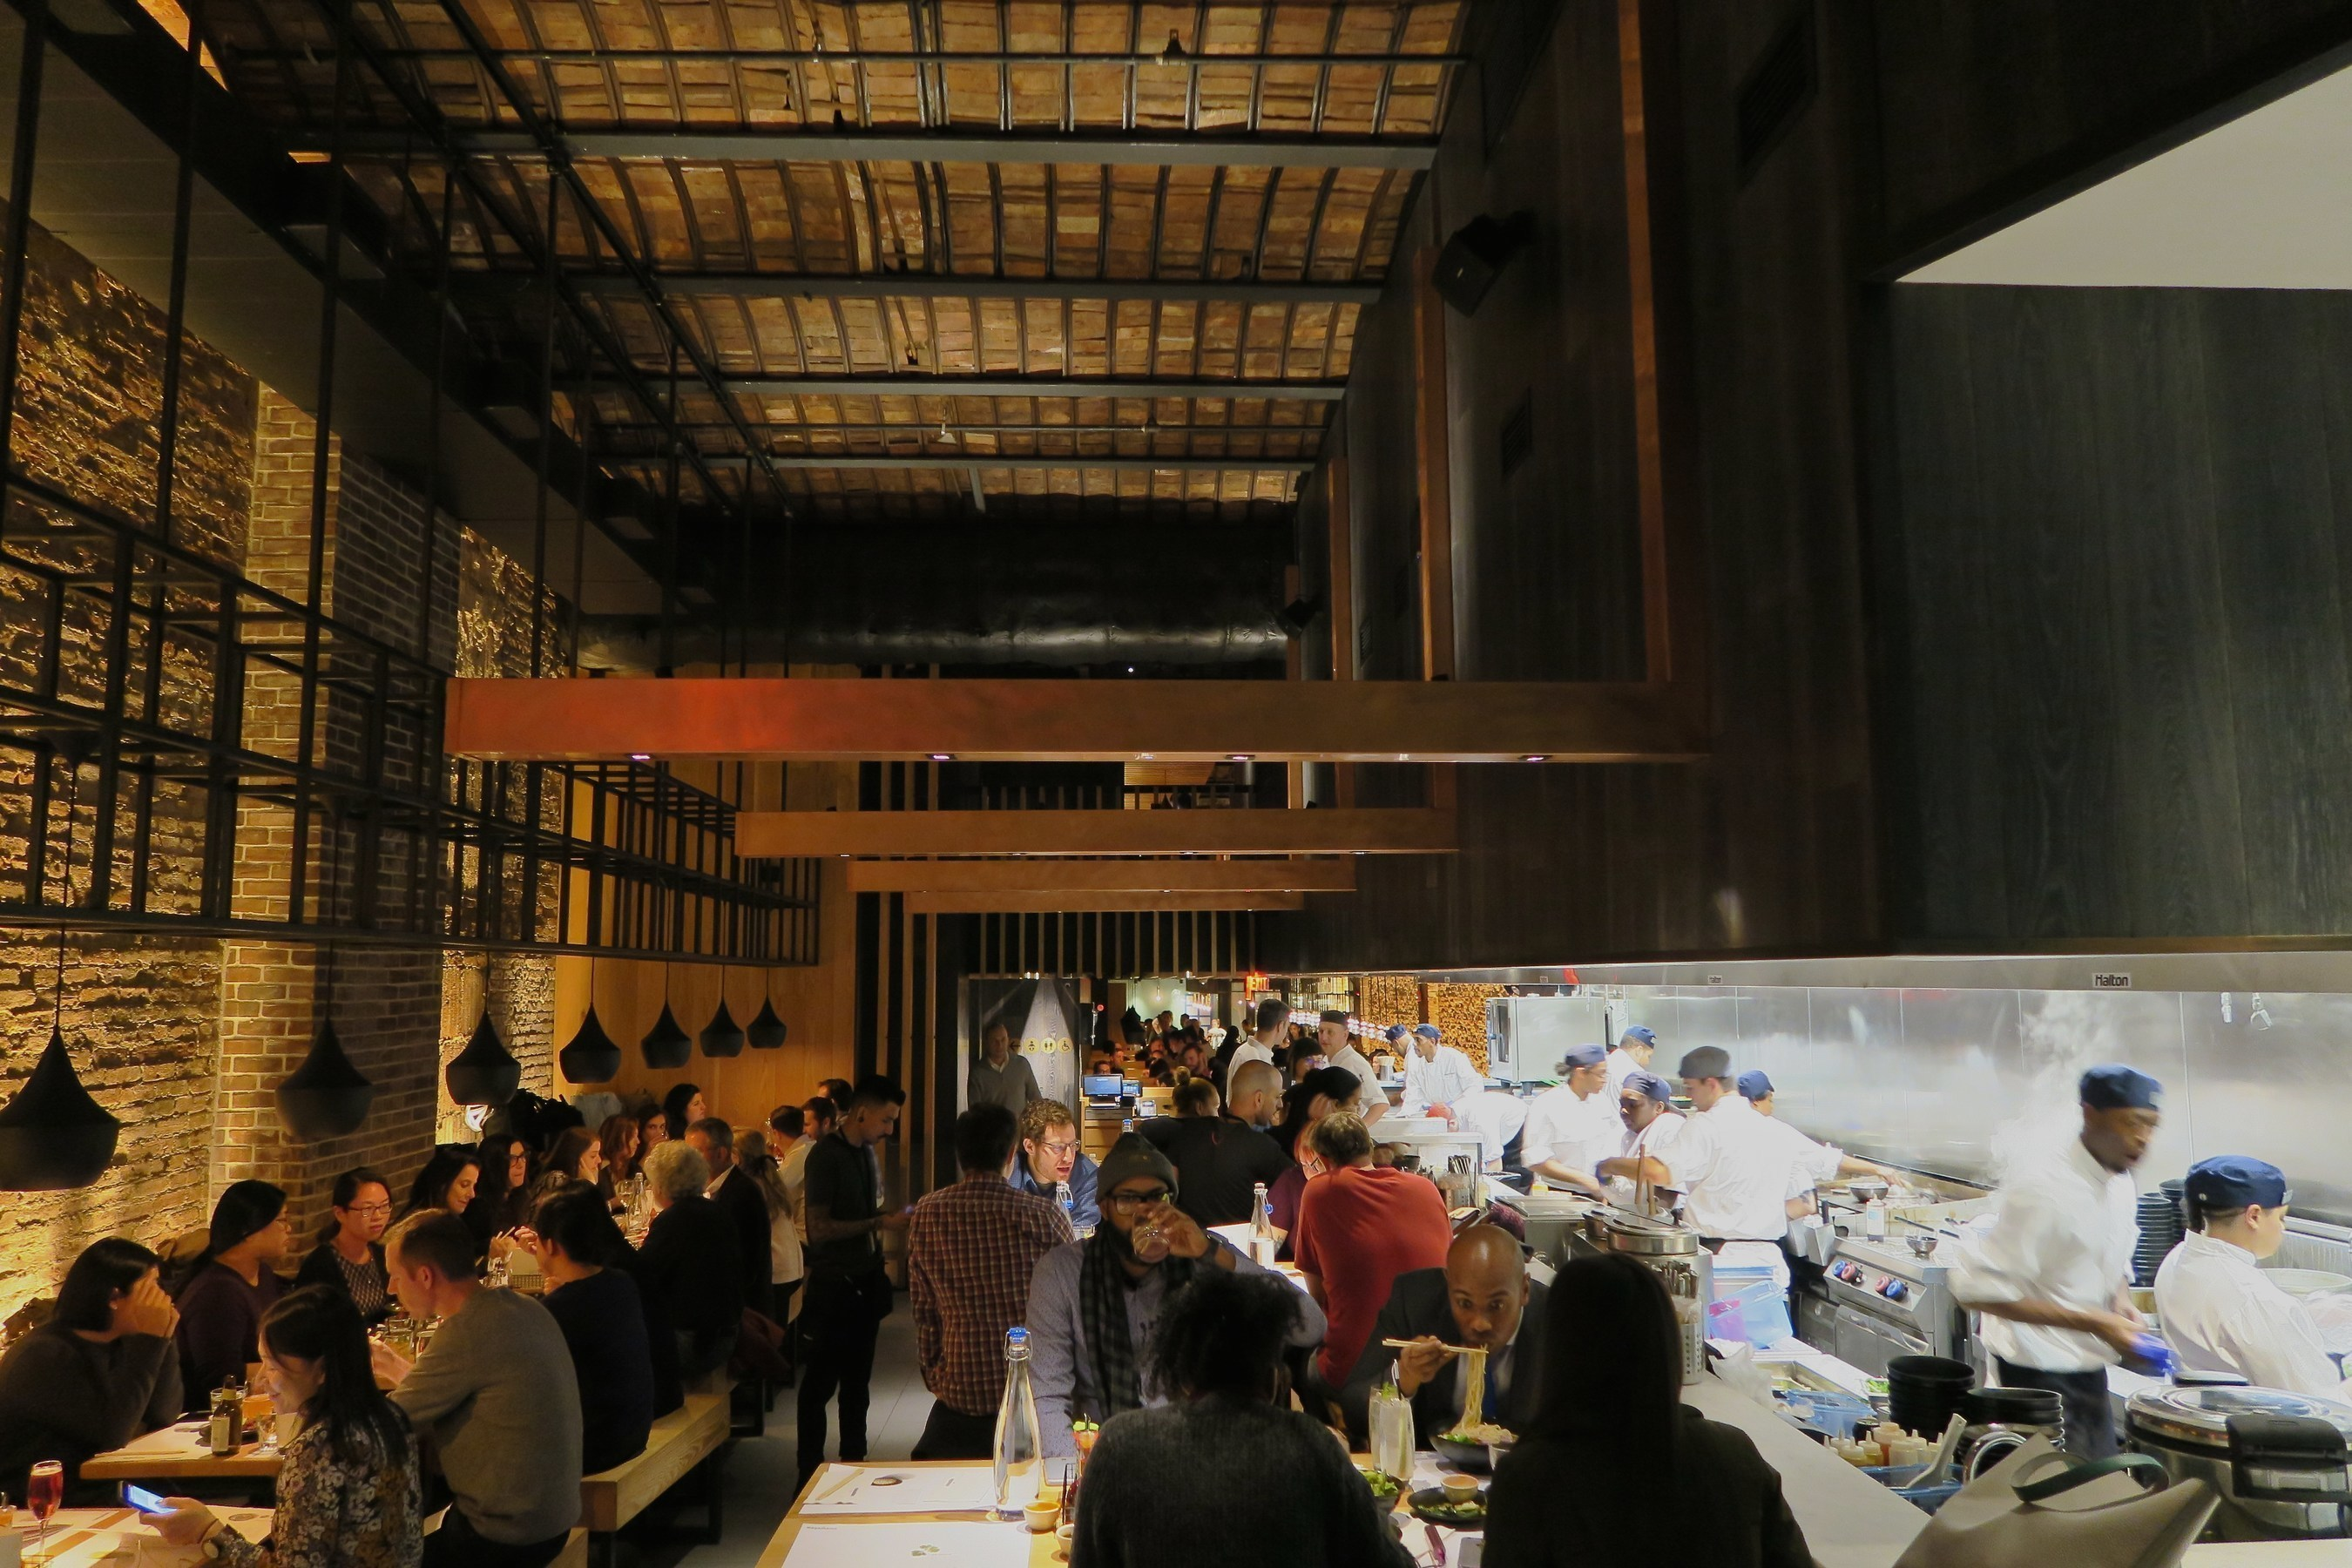 London favorite wagamama brings its curries, ramen and teppanyaki to NYC, opening November 16 at 210 Fifth Avenue, bordering the NoMad and Flatiron neighborhoods.